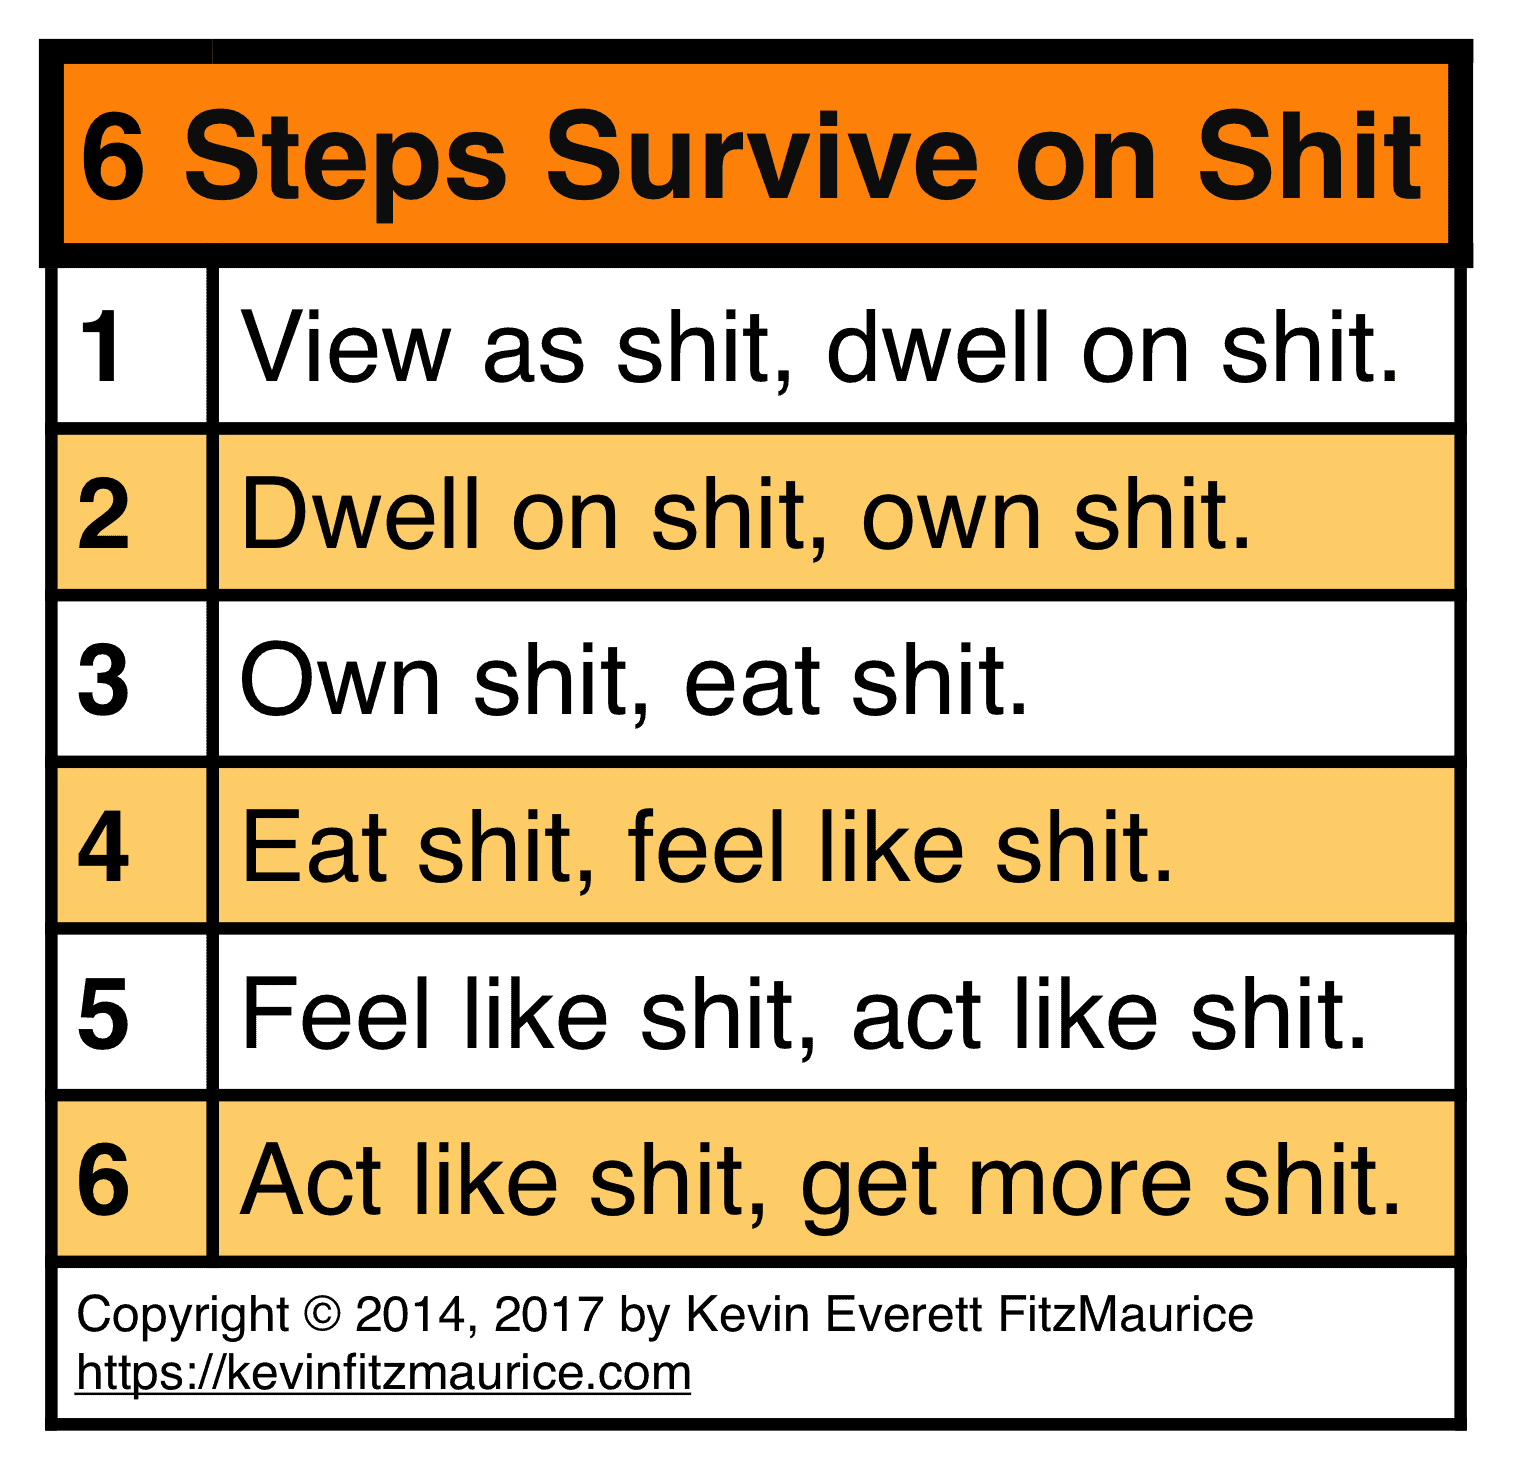 6 Steps to Survive on Shit